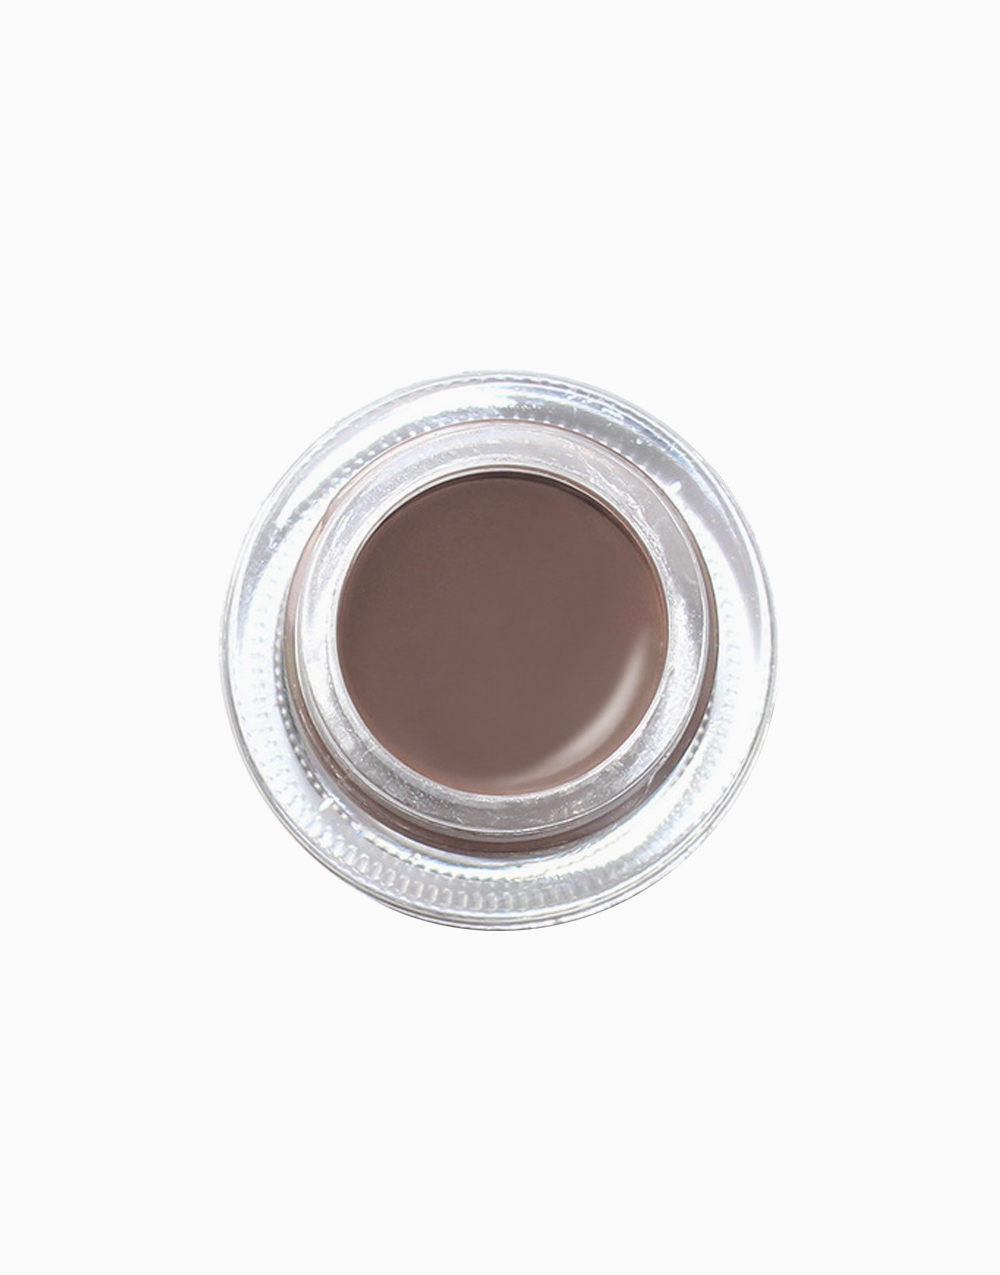 Tinted Eyebrow Pomade by Imagic | #2 Soft Brown